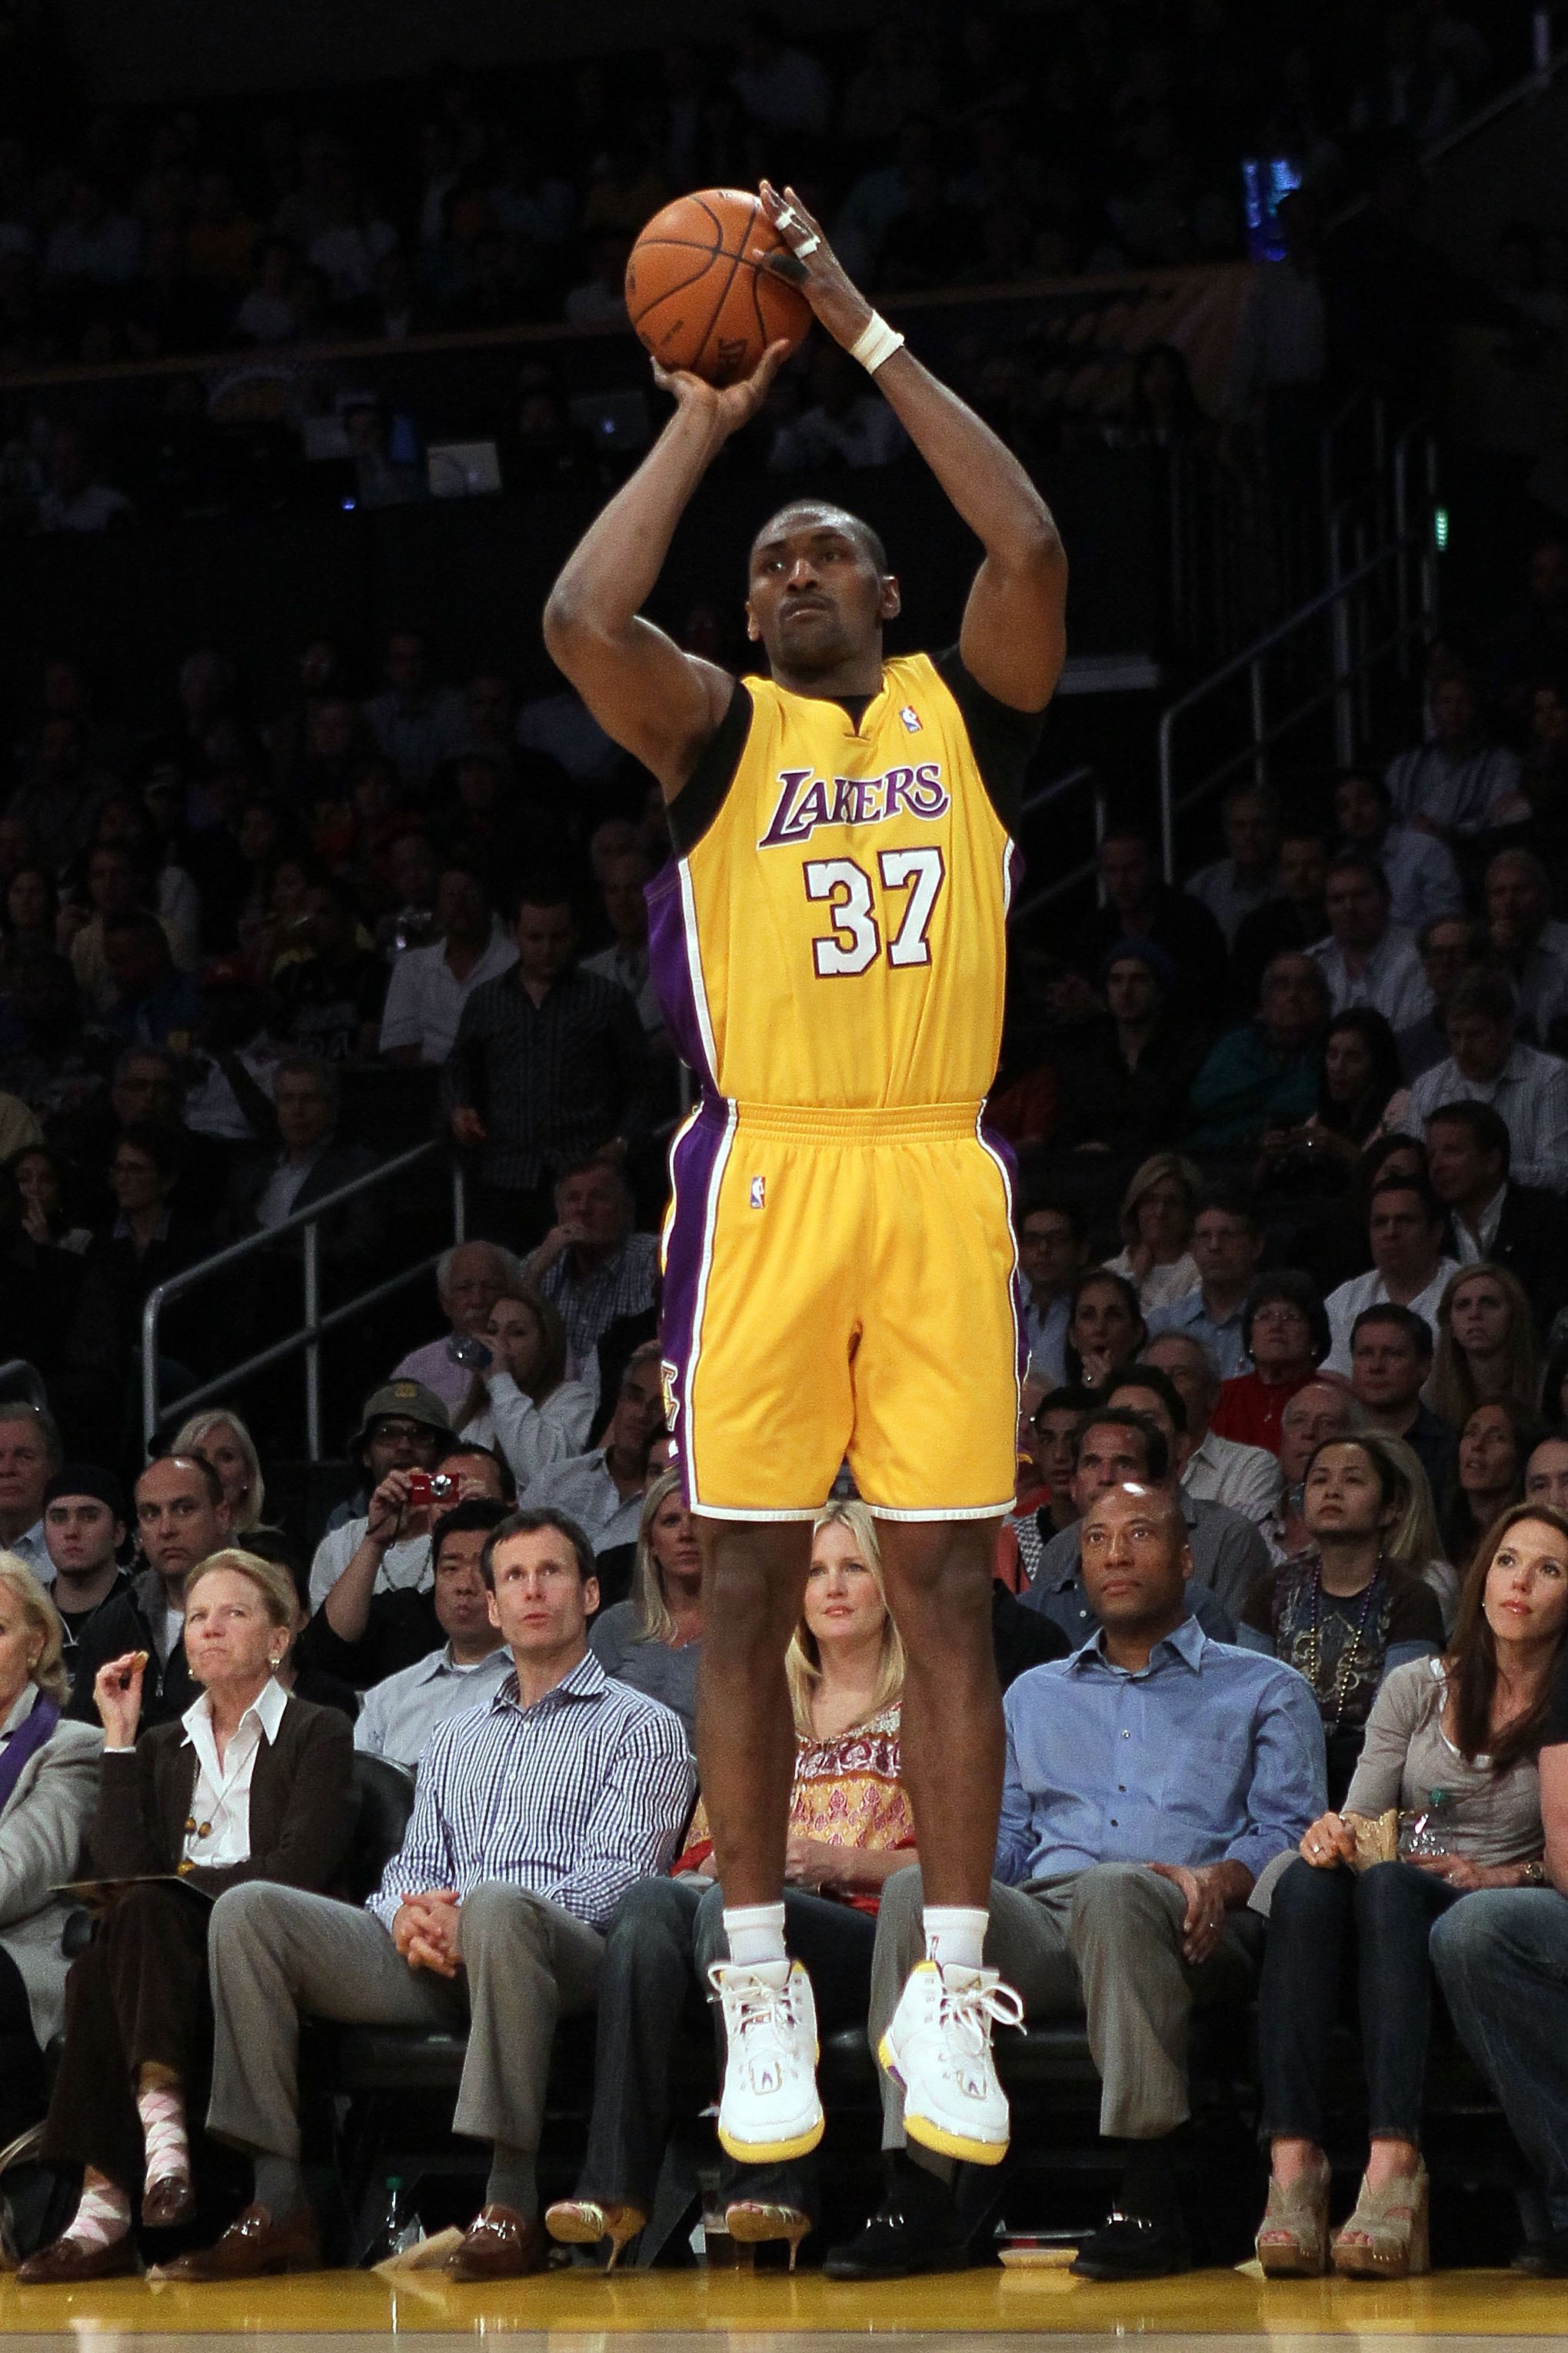 LOS ANGELES, CA - MAY 04:  Ron Artest #37 of the Los Angeles Lakers shoots a three-pointer while taking on the Utah Jazz during Game Two of the Western Conference Semifinals of the 2010 NBA Playoffs at Staples Center on May 4, 2010 in Los Angeles, Califor